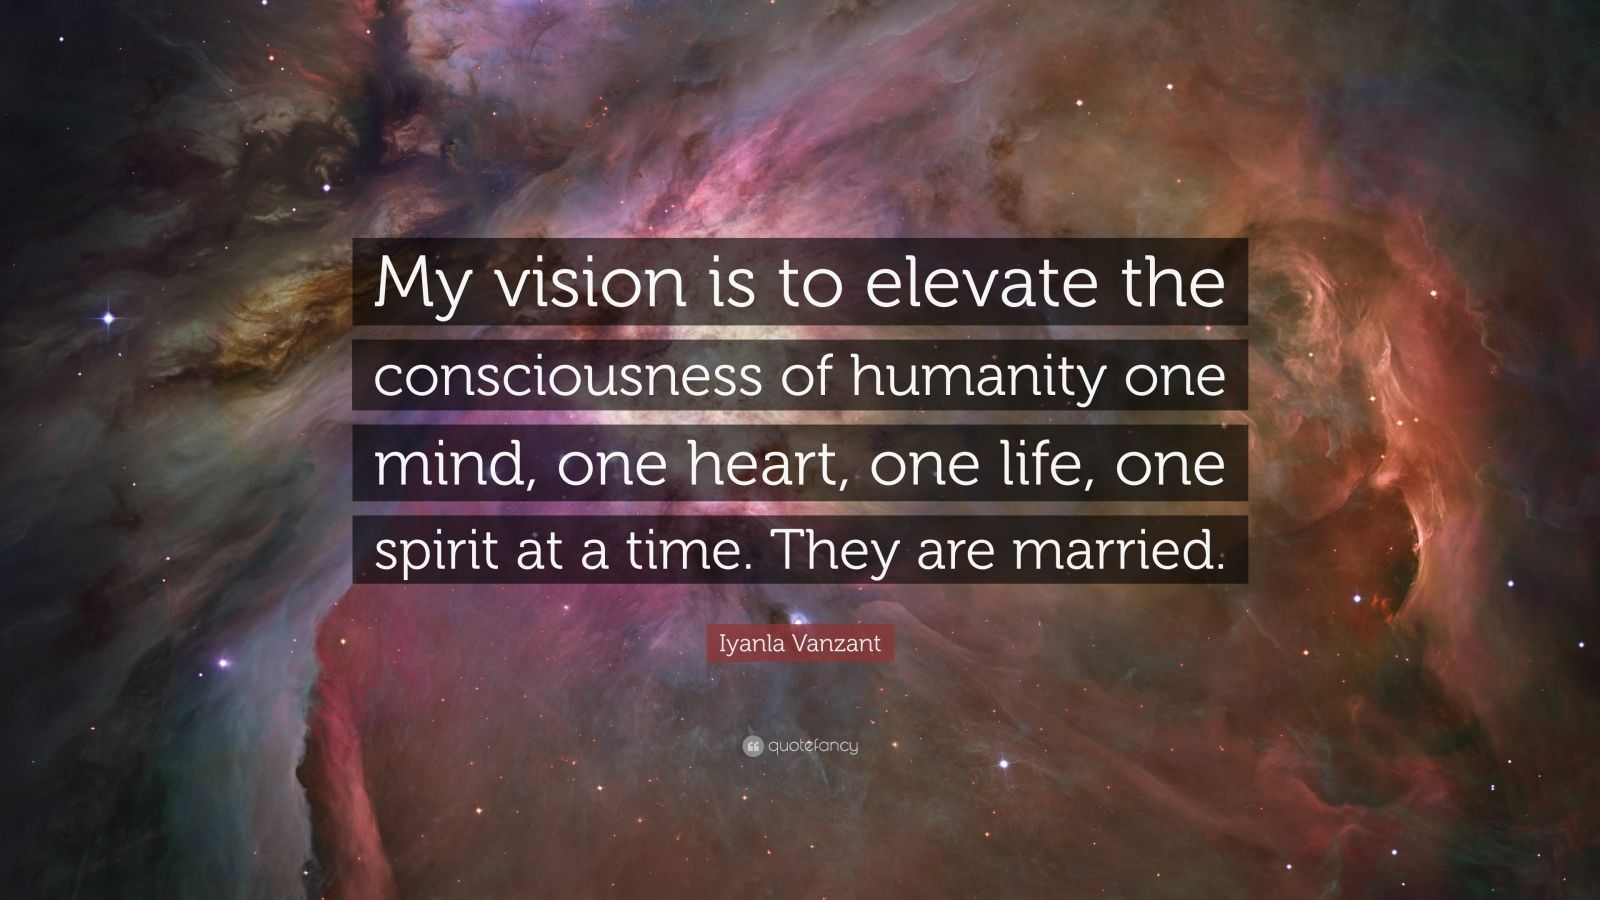 """Iyanla Vanzant Quote: """"My vision is to elevate the consciousness of humanity one mind, one heart, one life, one spirit at a time. They are married."""""""